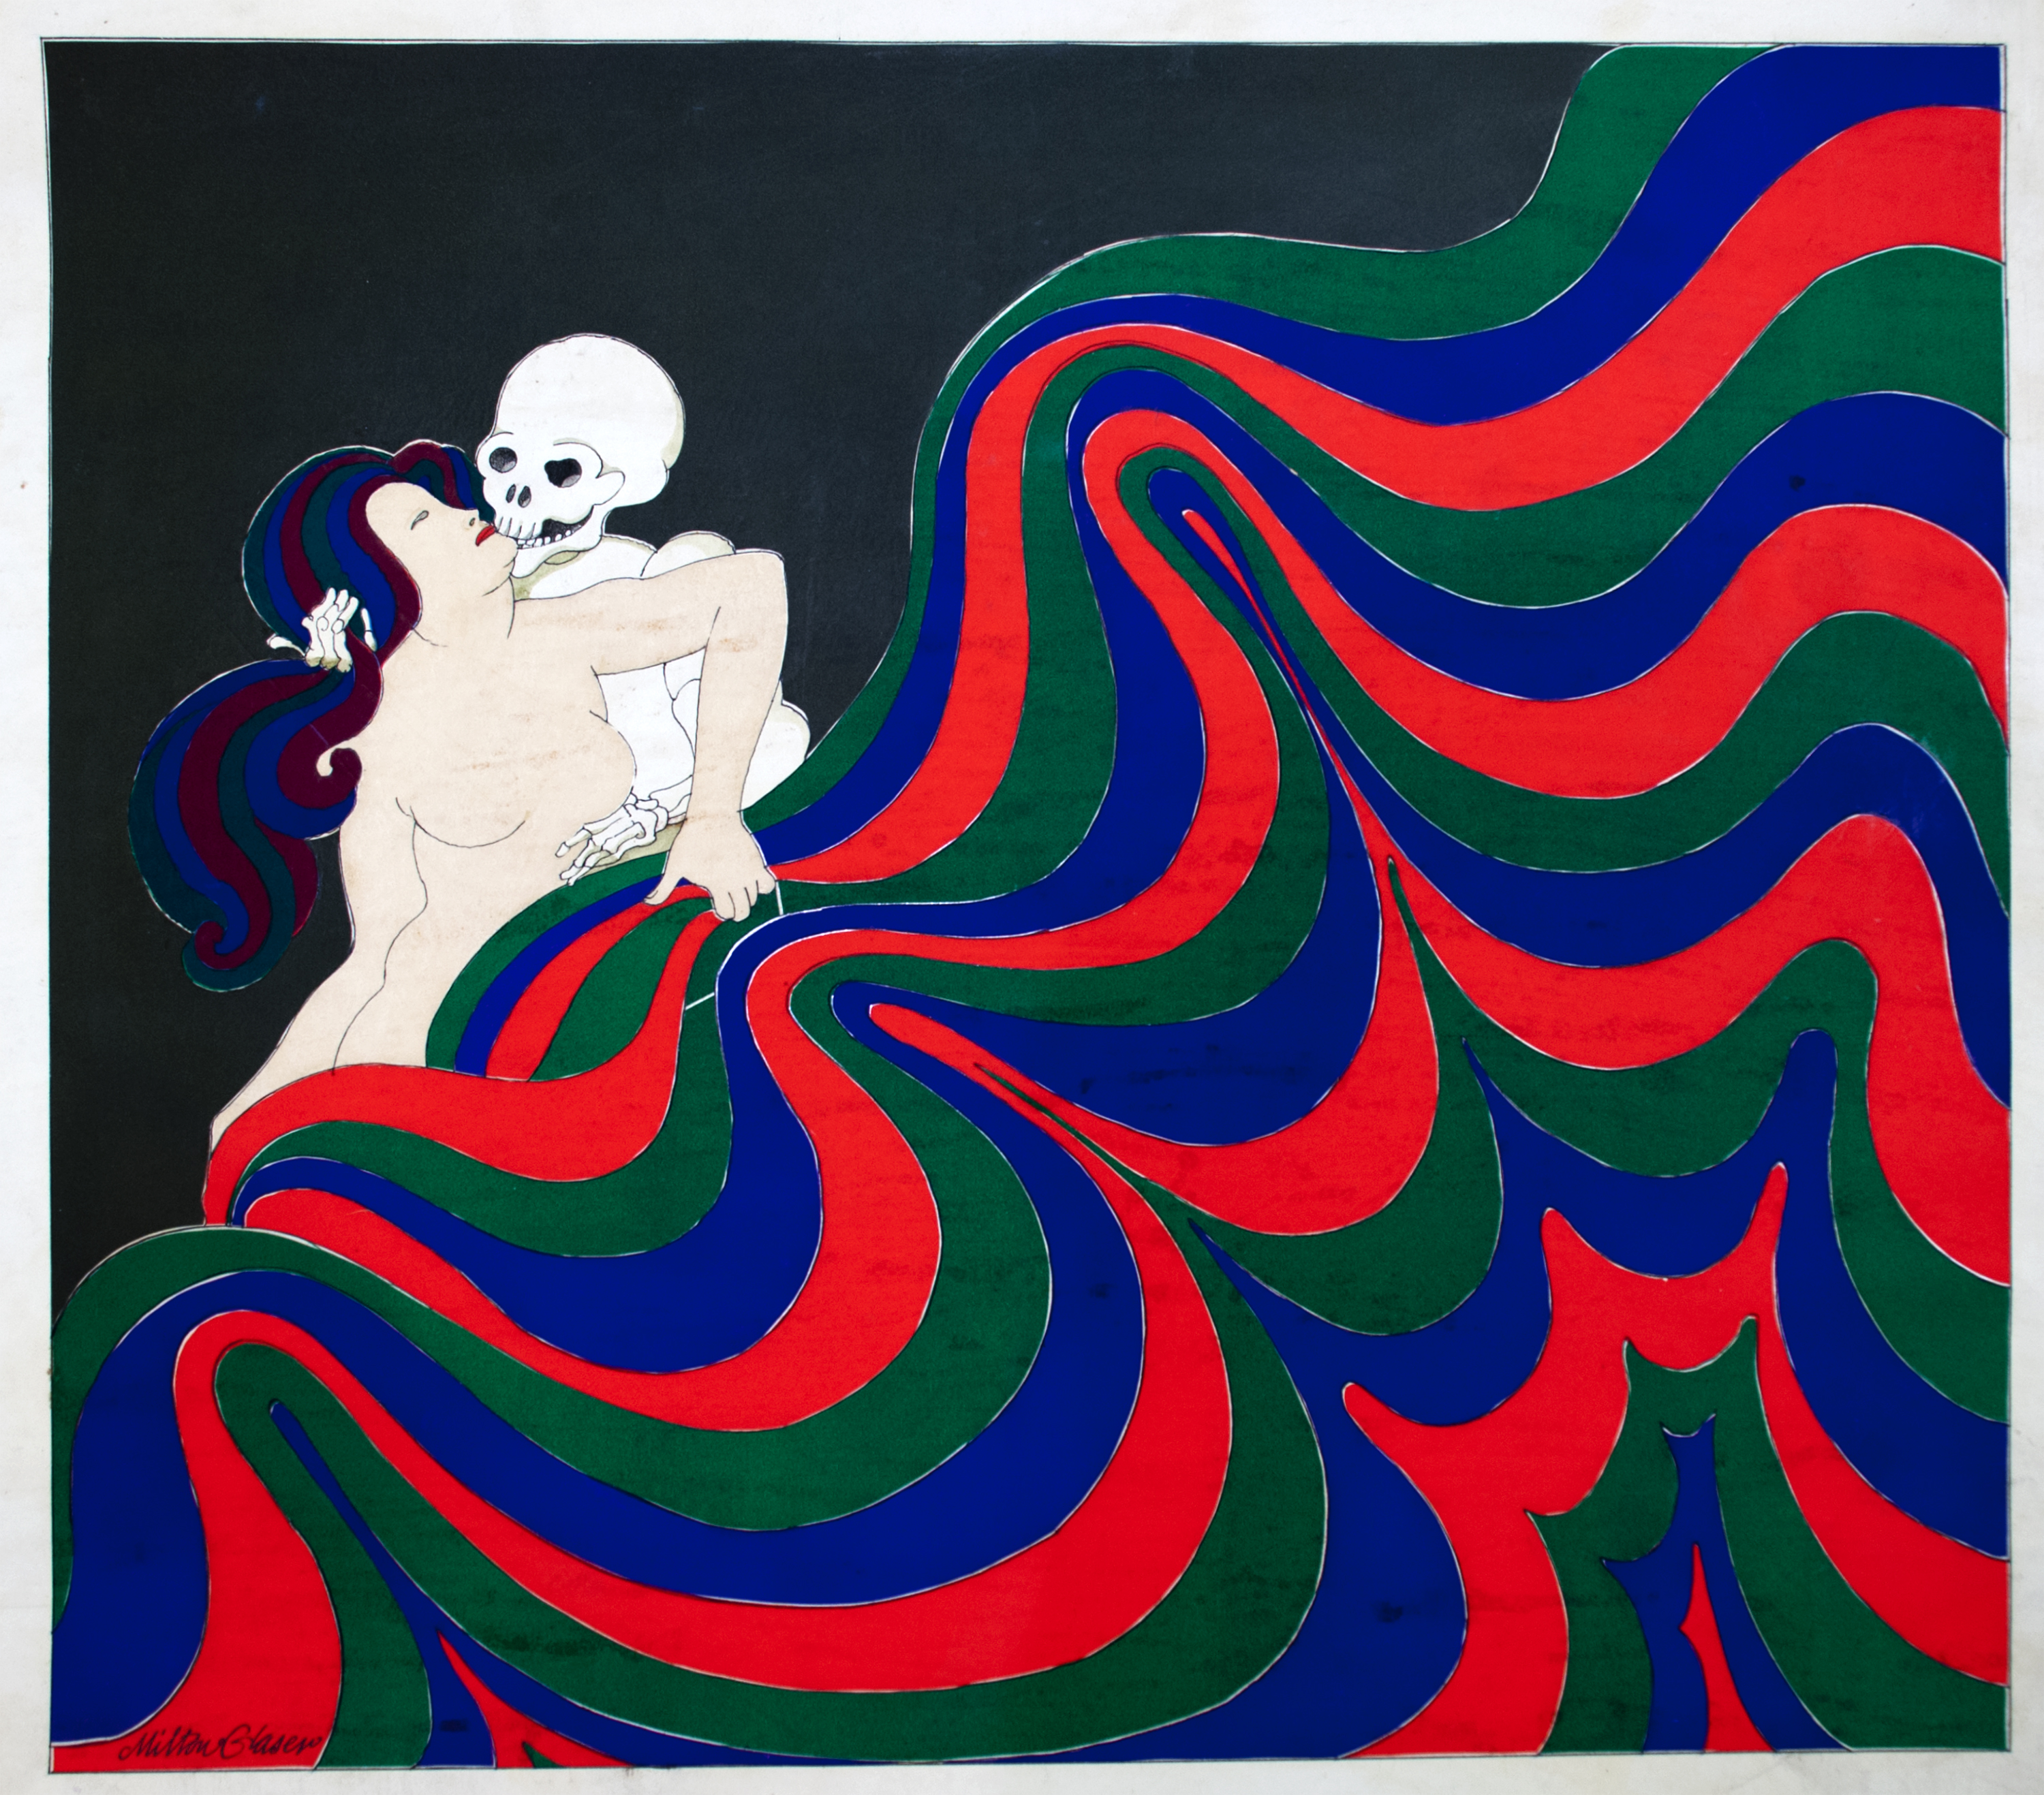 A skeleton embracing a nude woman, holding a vibrant blue, red, and green tapestry.